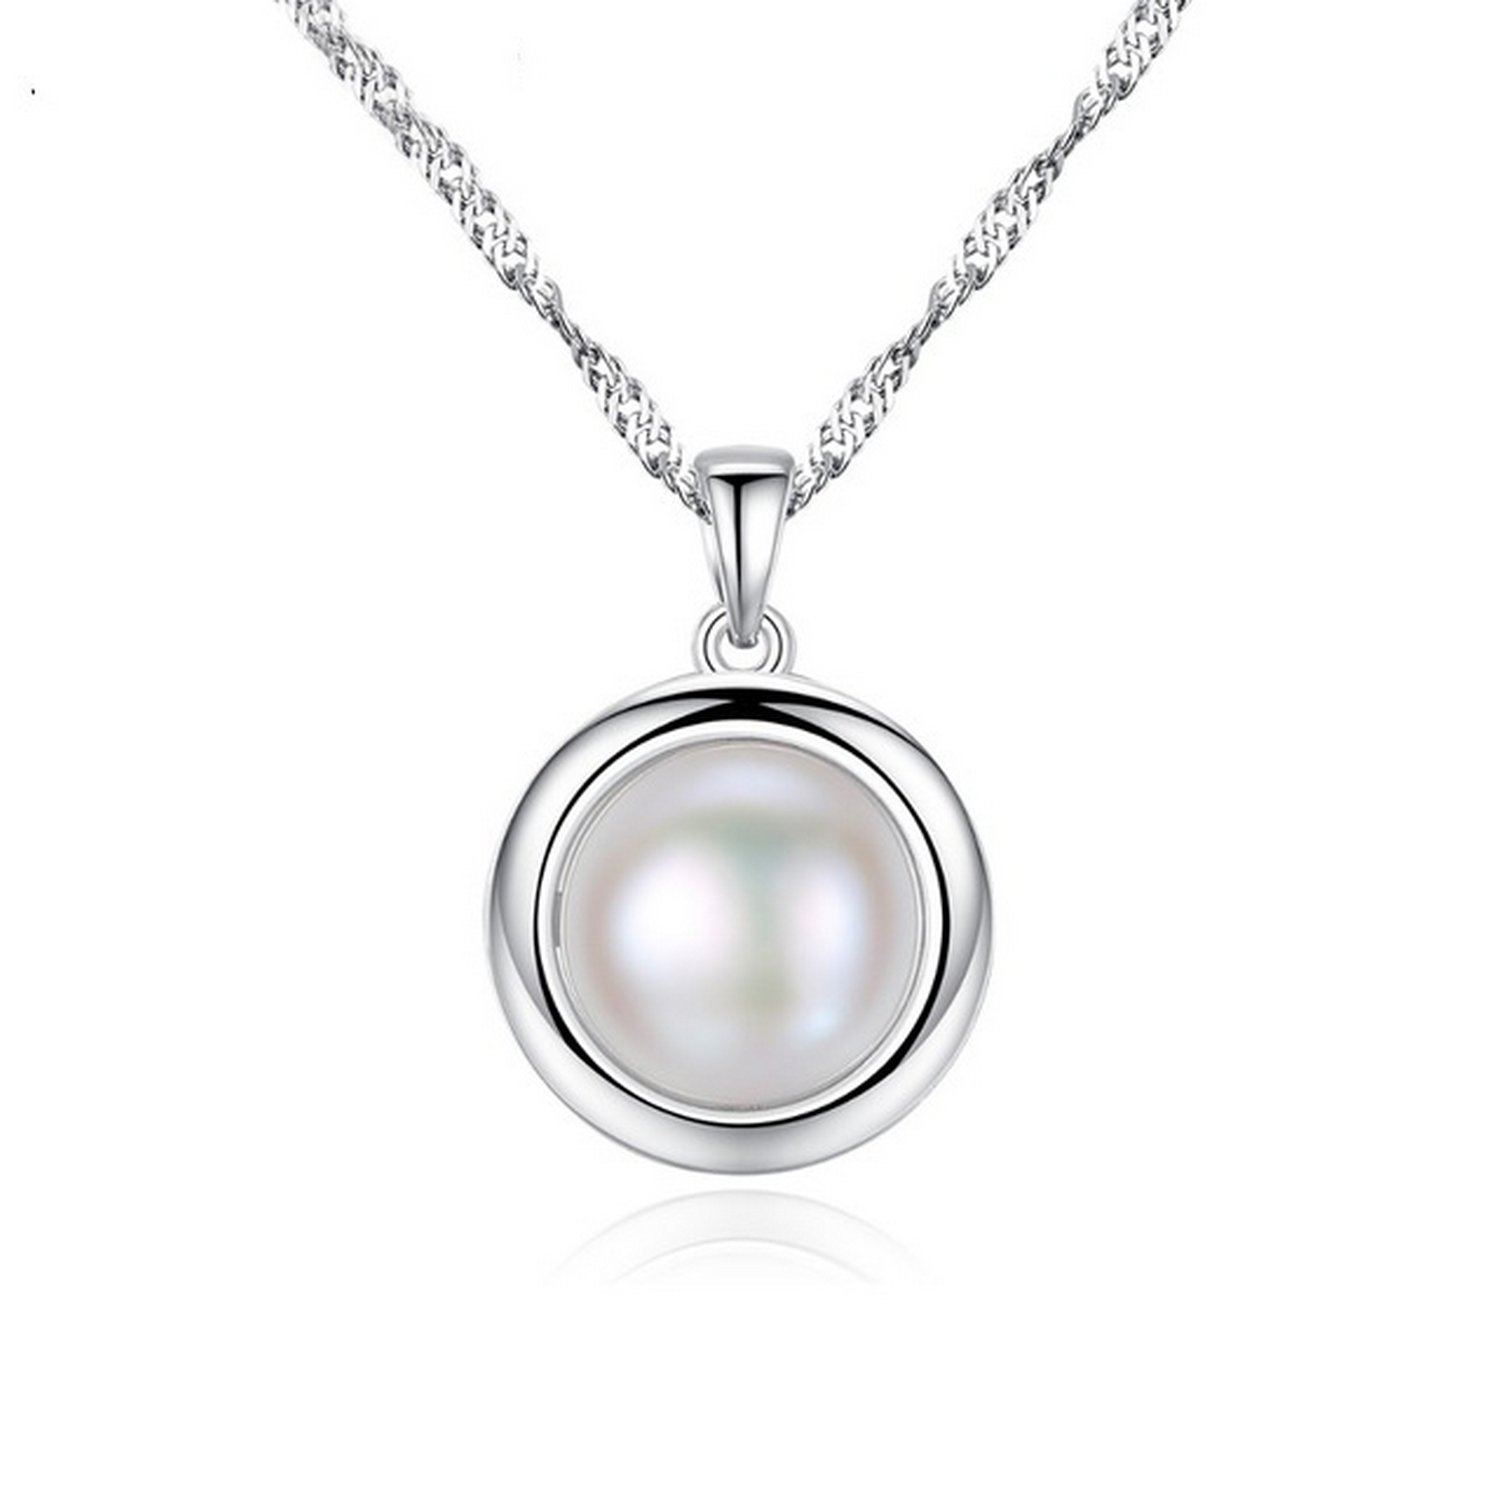 MMC Silver Pendants White Pearl Necklaces for Womens